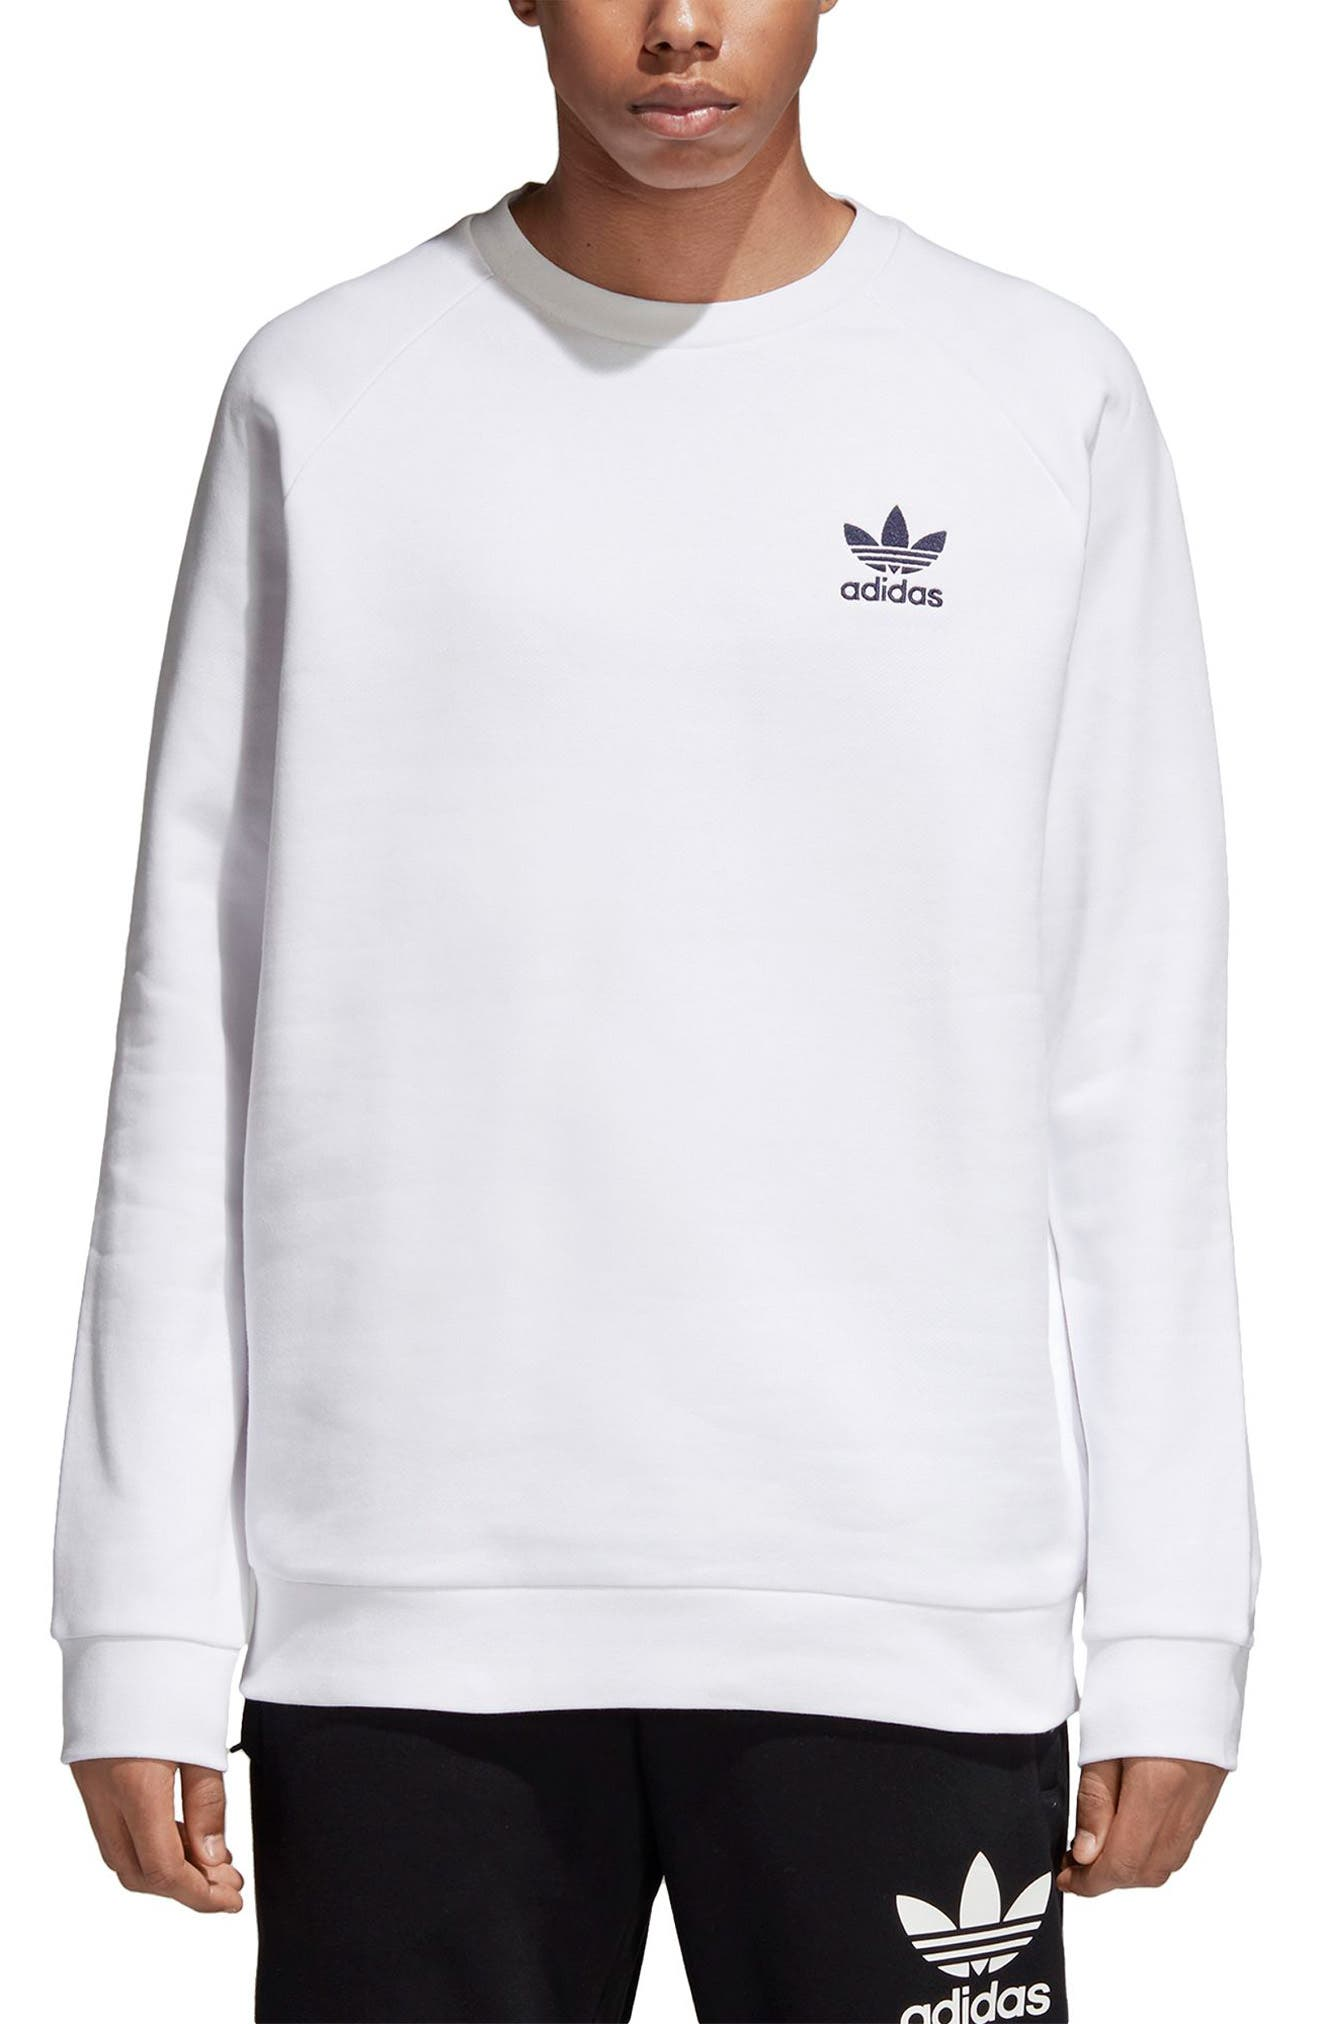 adidas Originals Ice Cream Sweatshirt